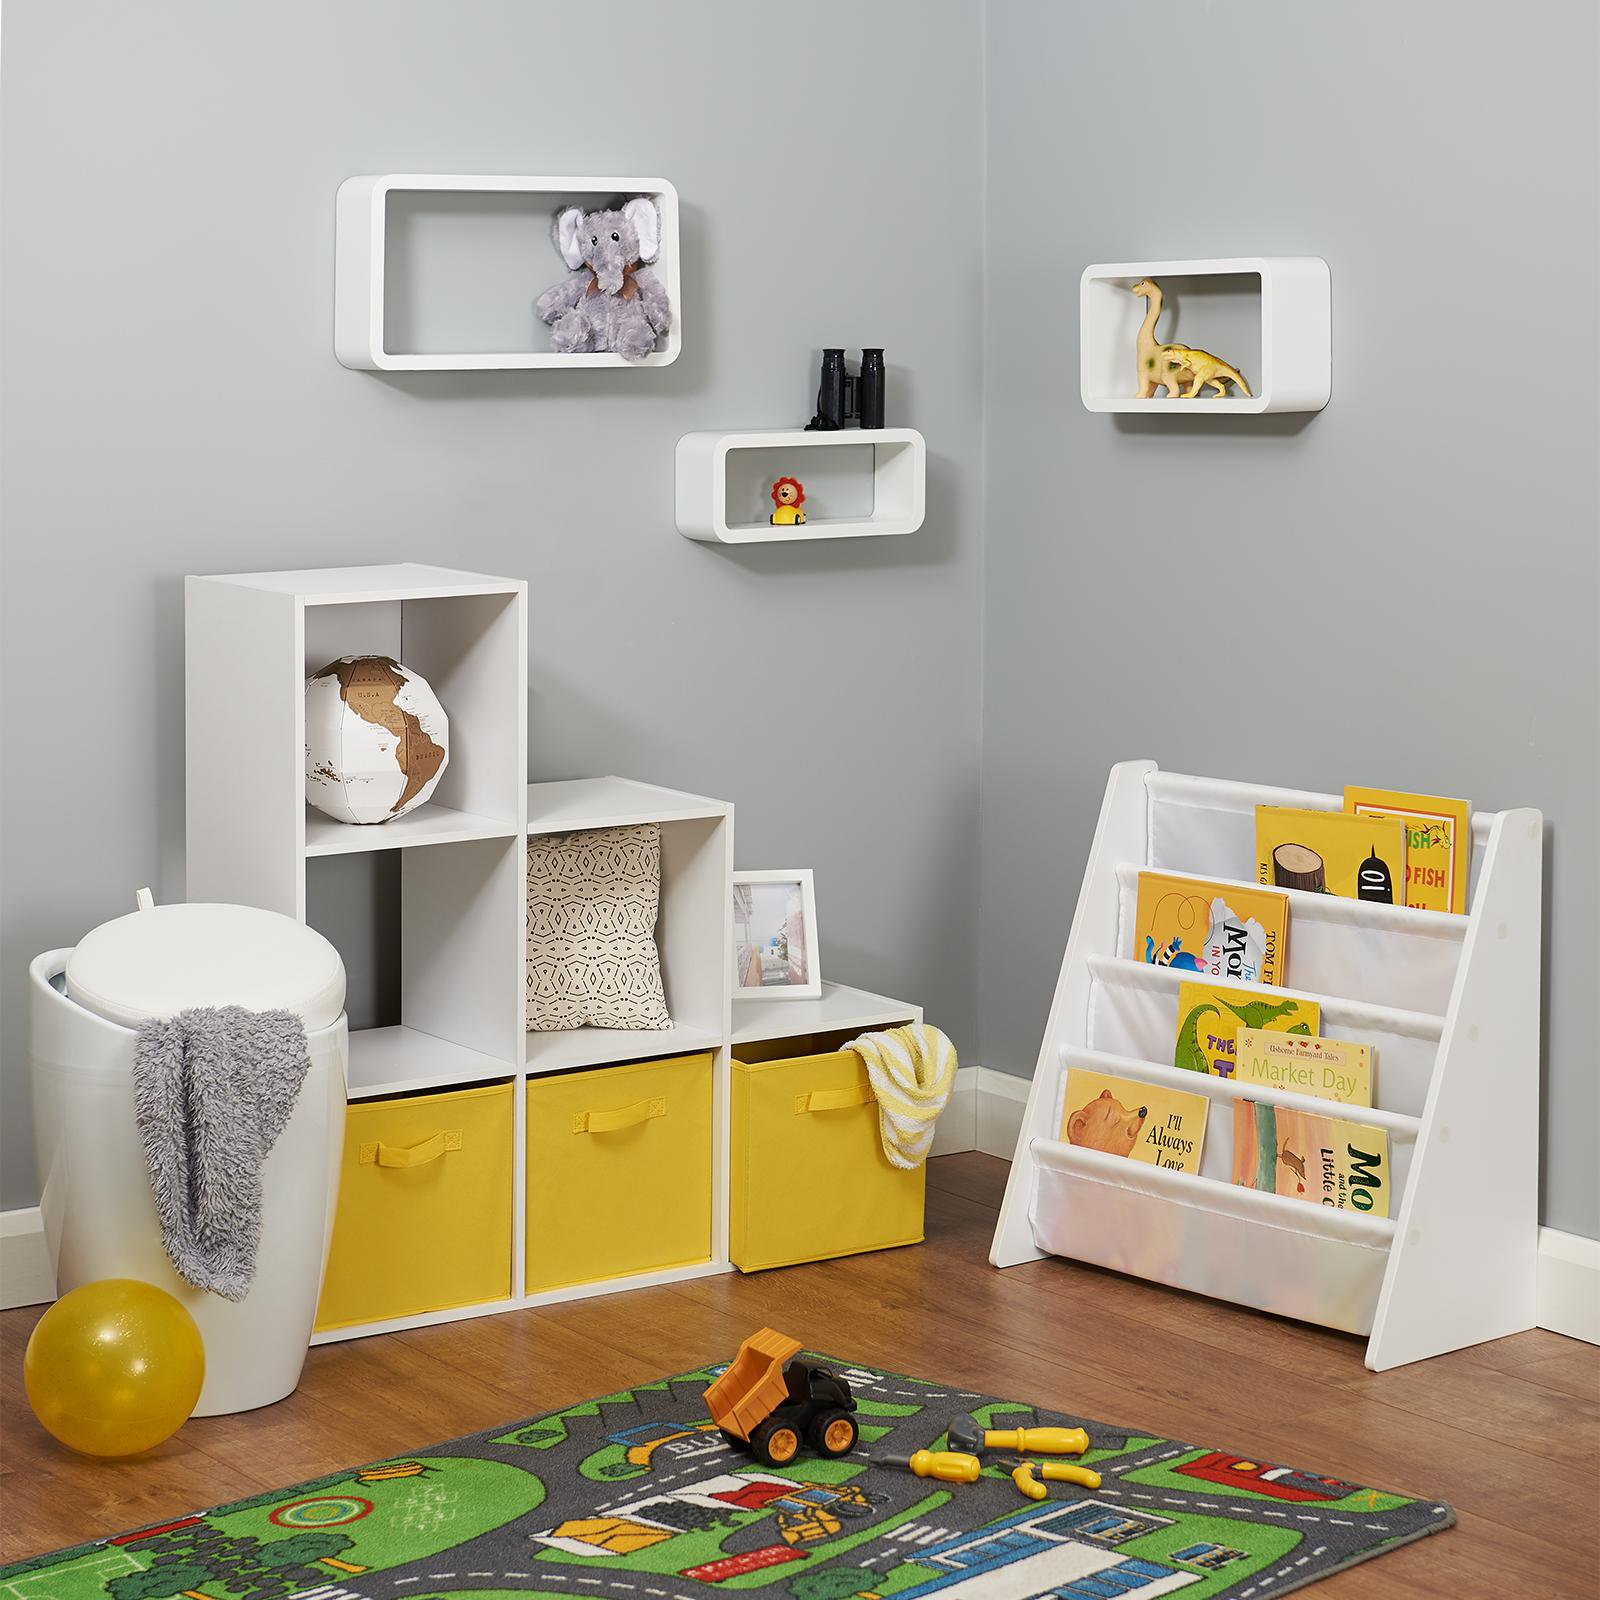 image-Hartleys Baby's First Bedroom Set - Yellow Boxes